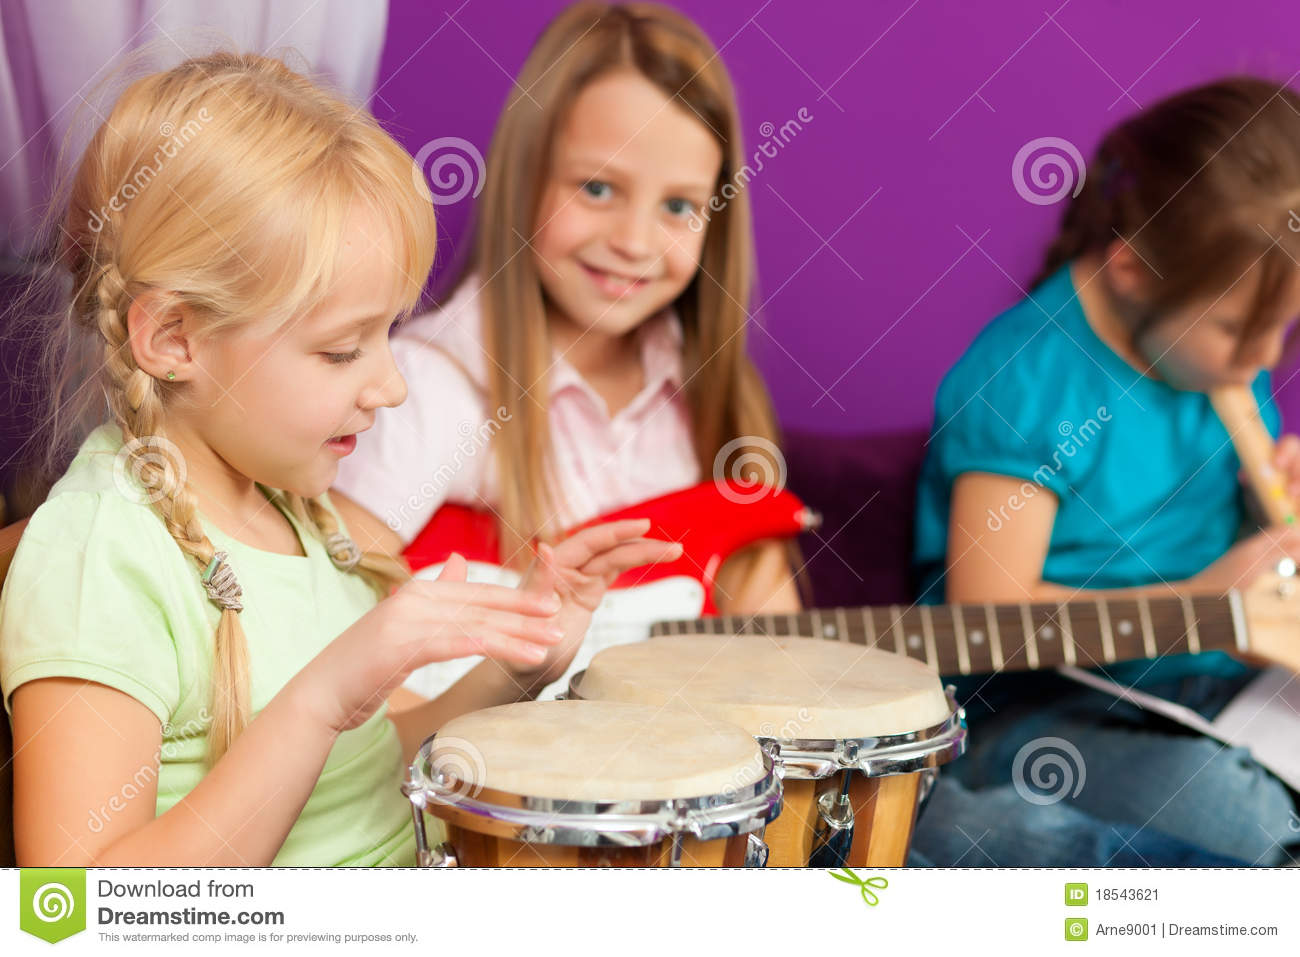 Children making music